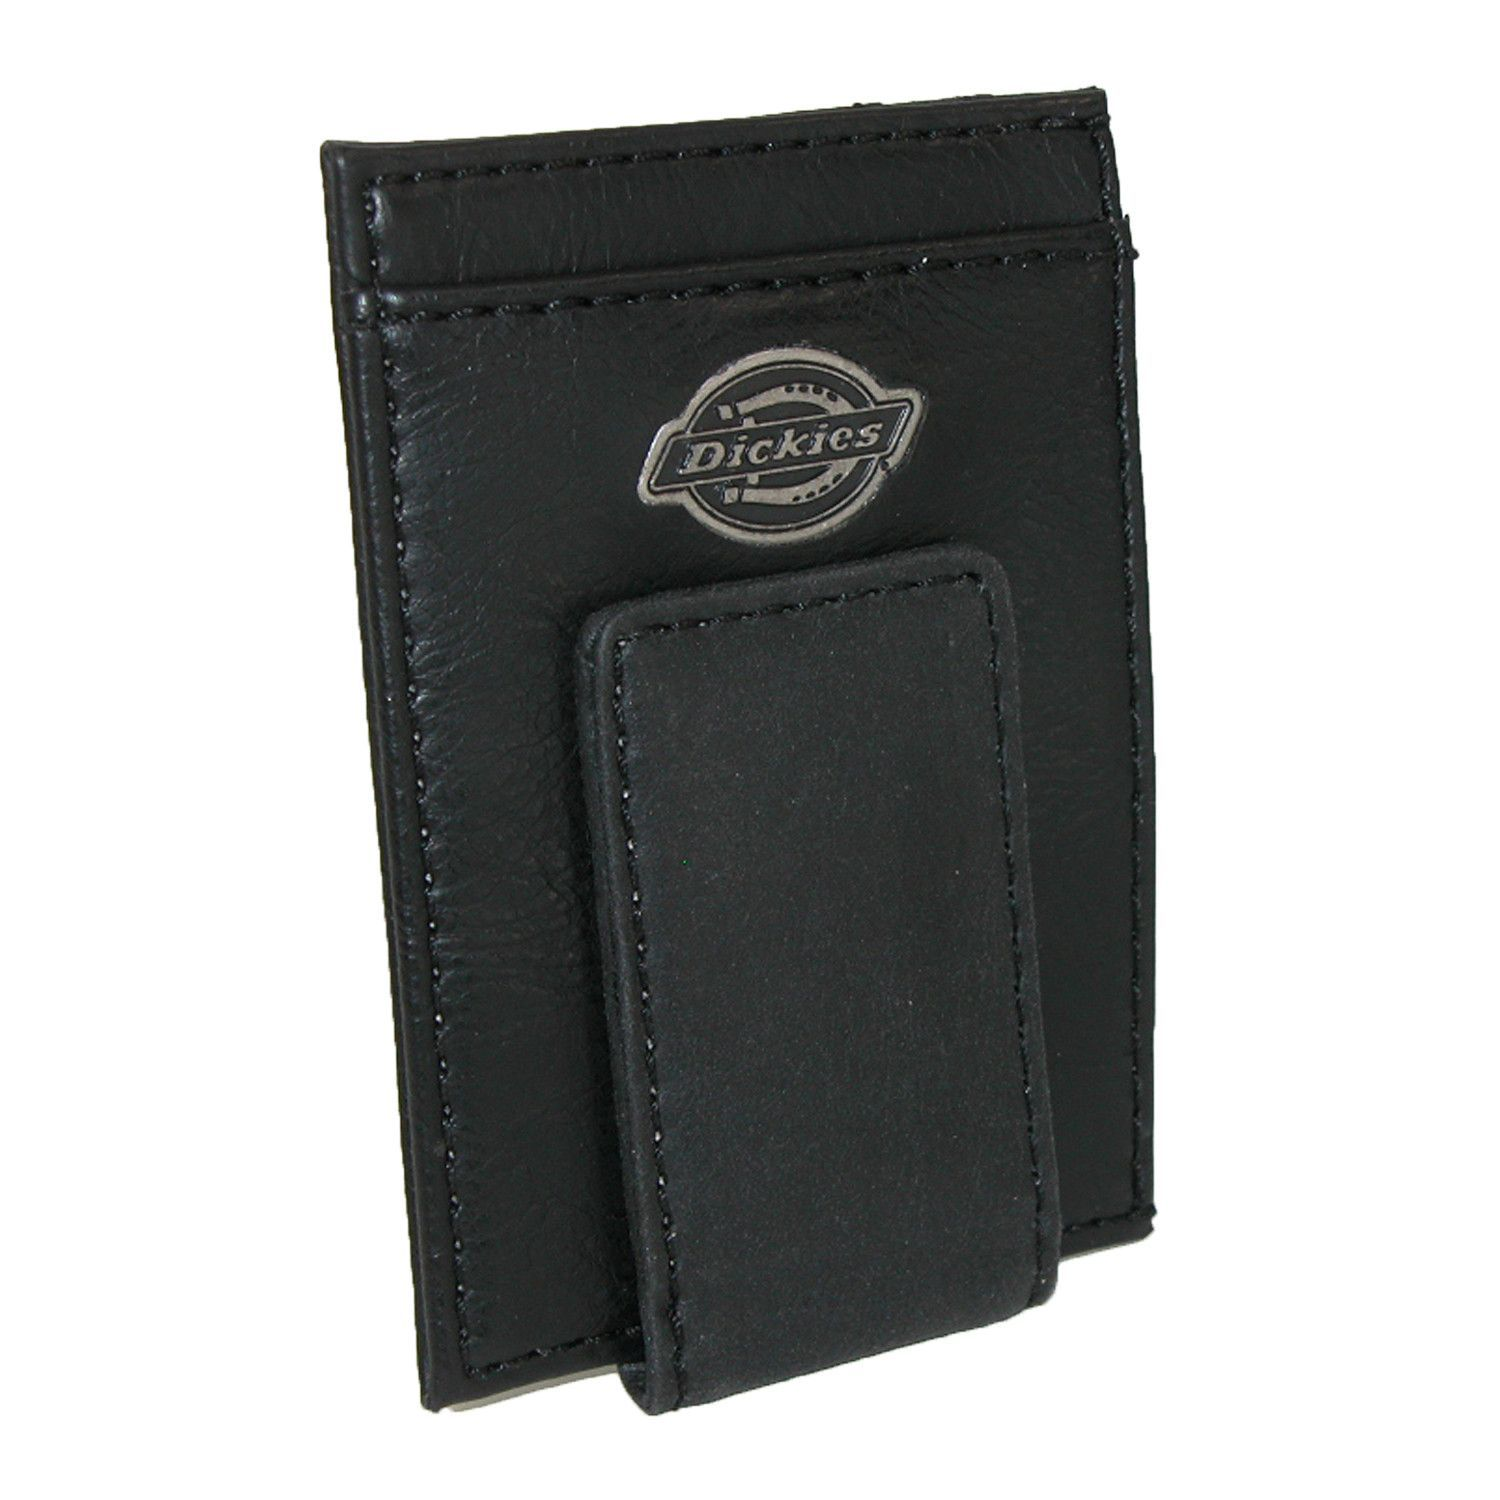 Dickies Mens Leather Card Case Wallet with Money Clip